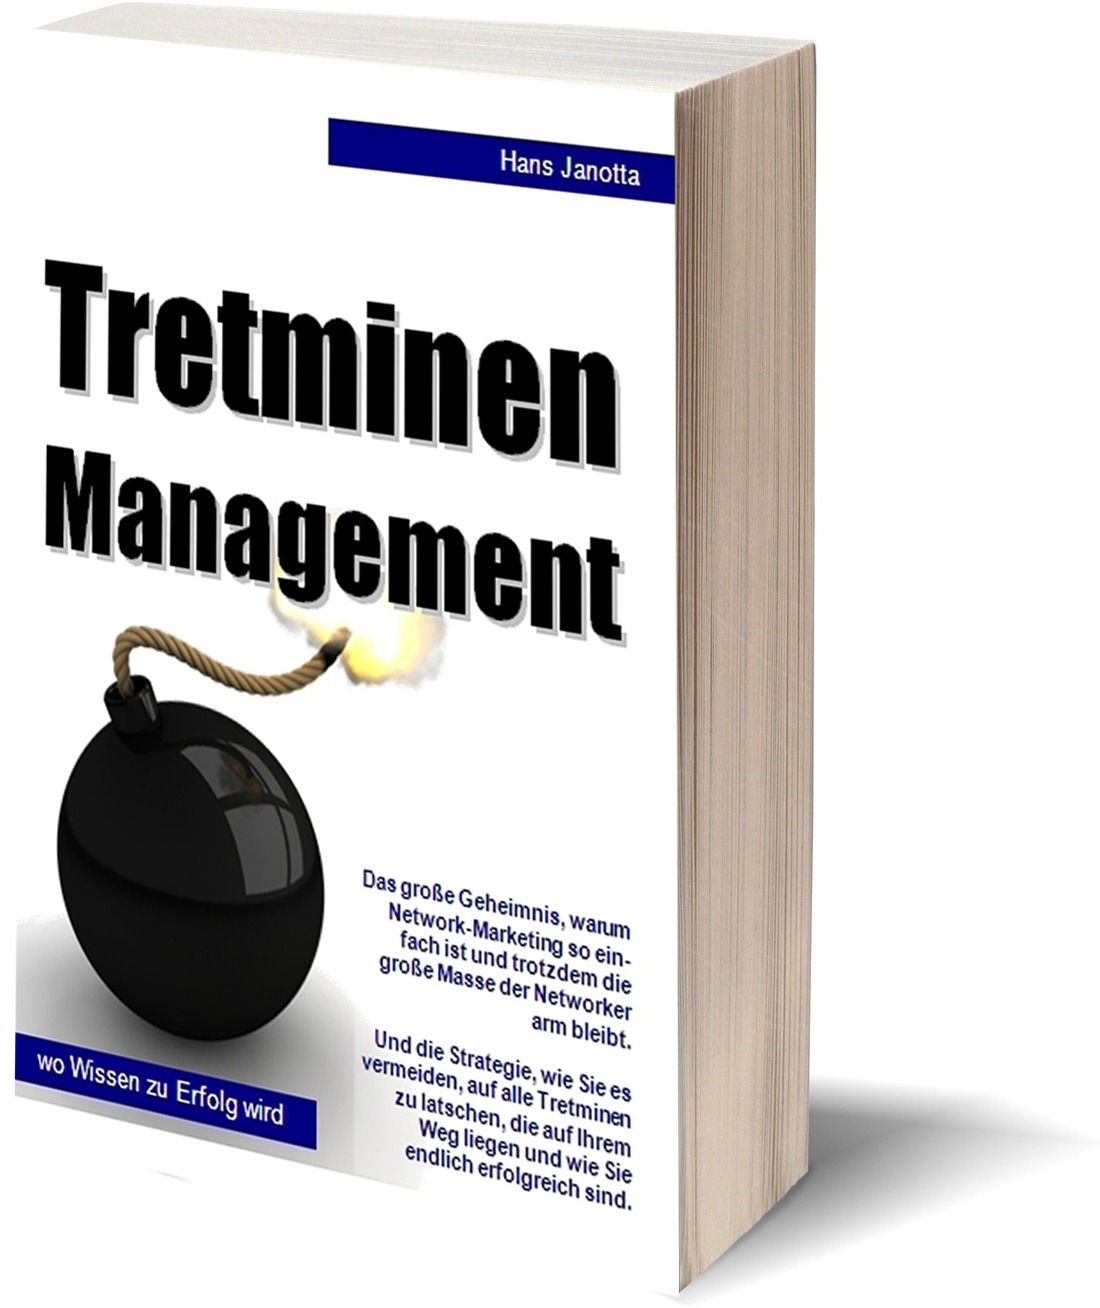 Tretminen-Management